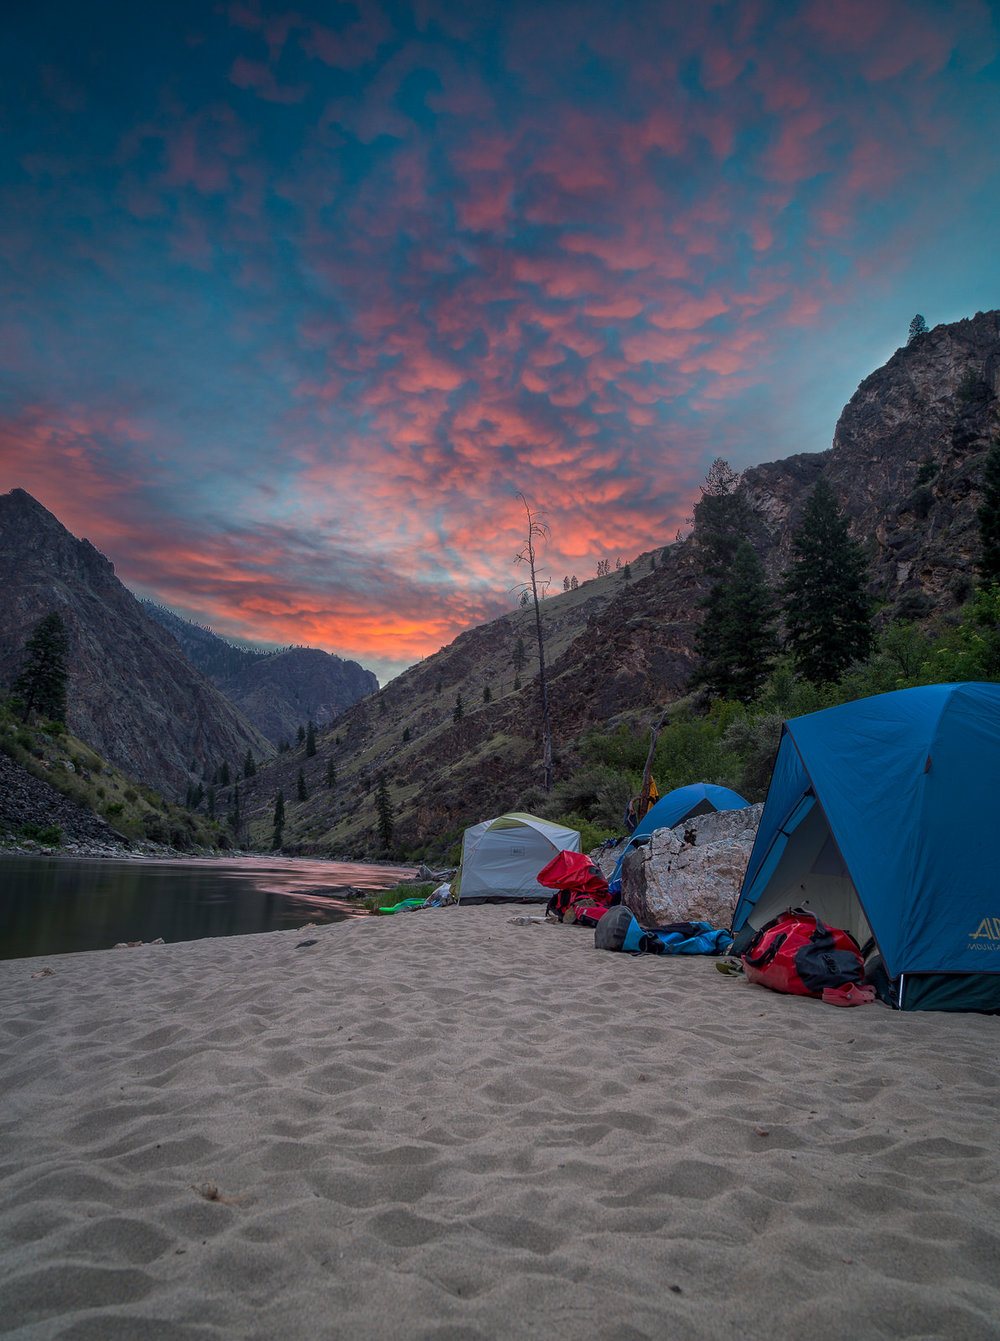 Sunrise over the Middle Fork of the Salmon River